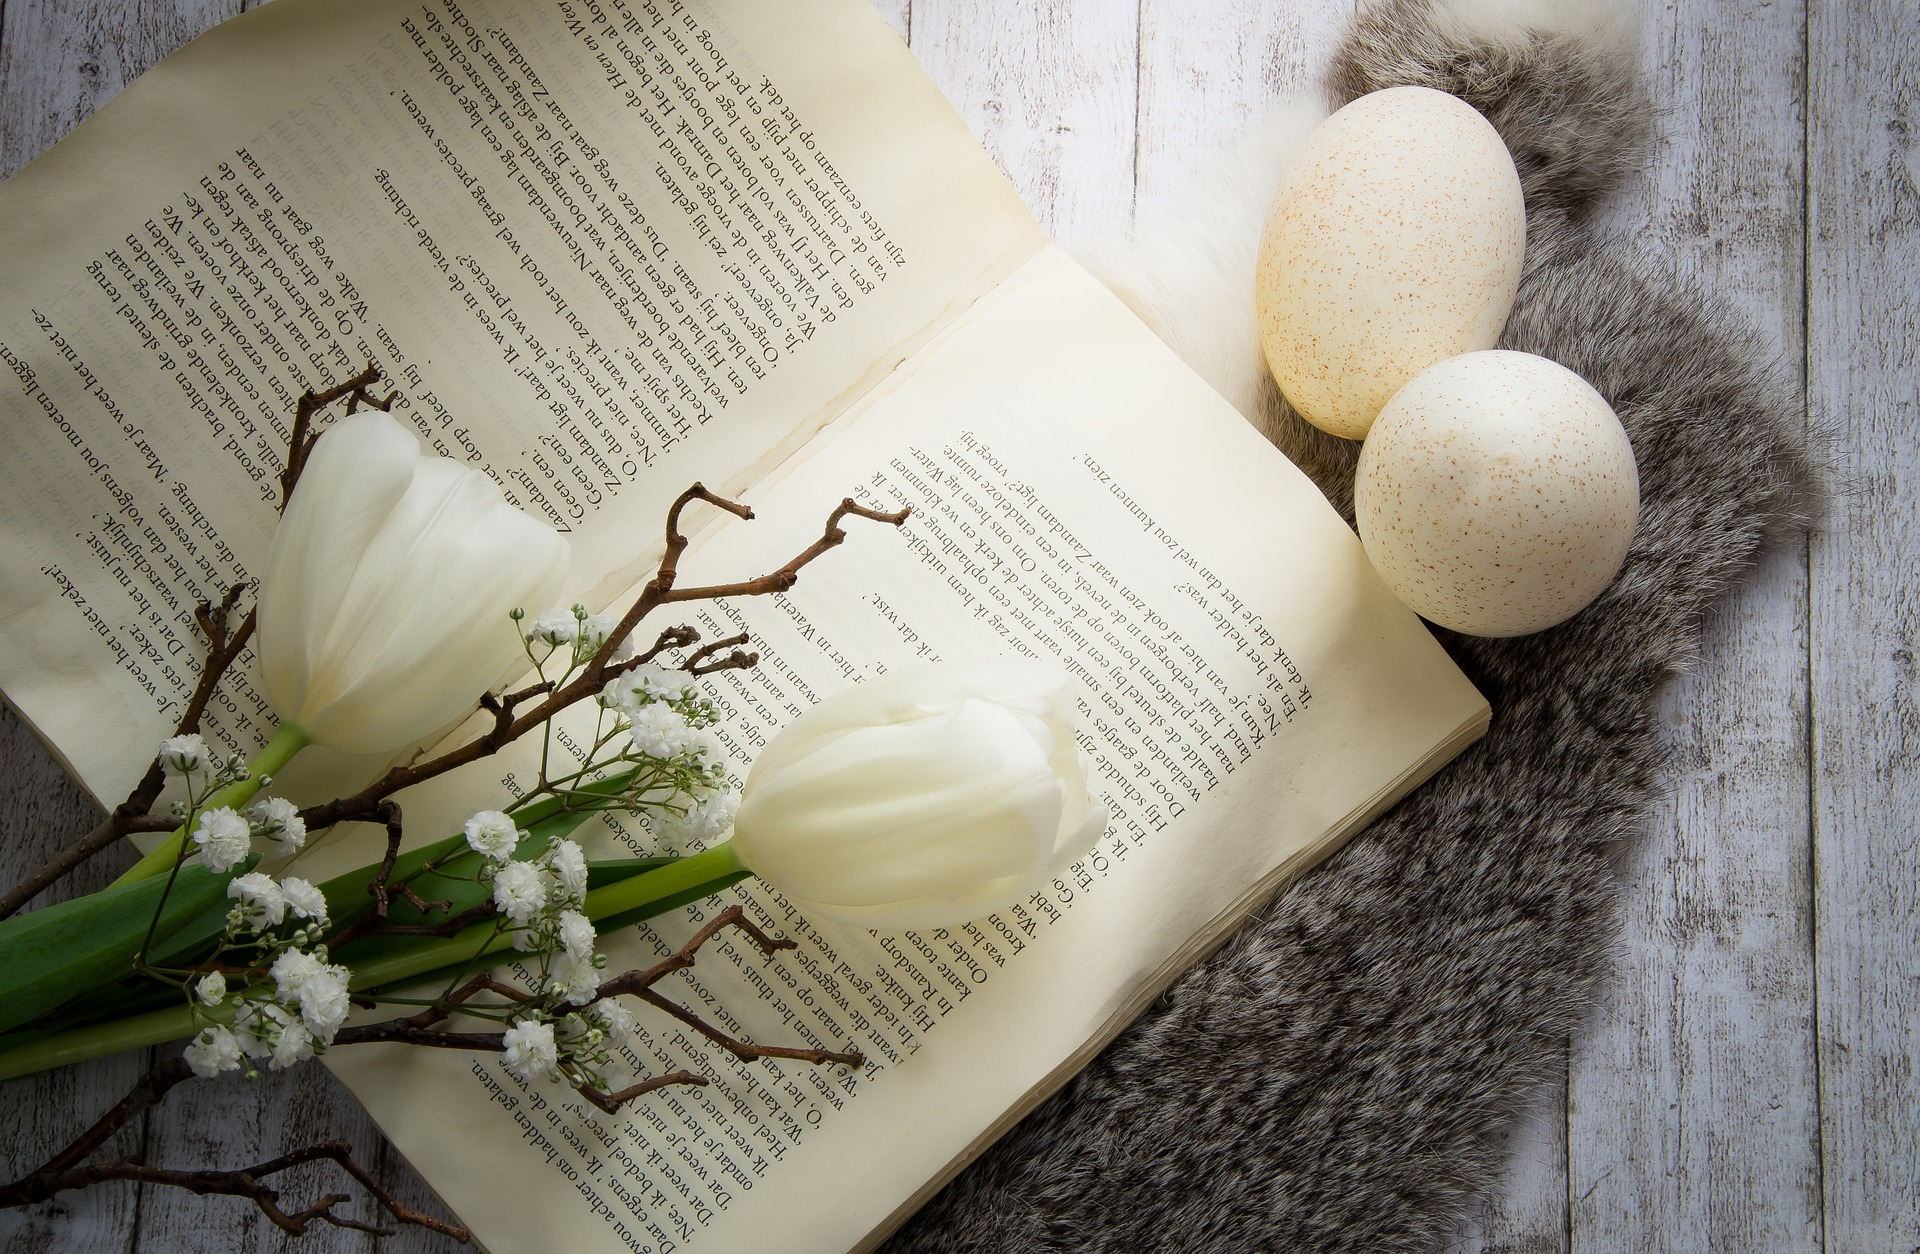 open book with tulips, baby's breath, and 2 speckled eggs